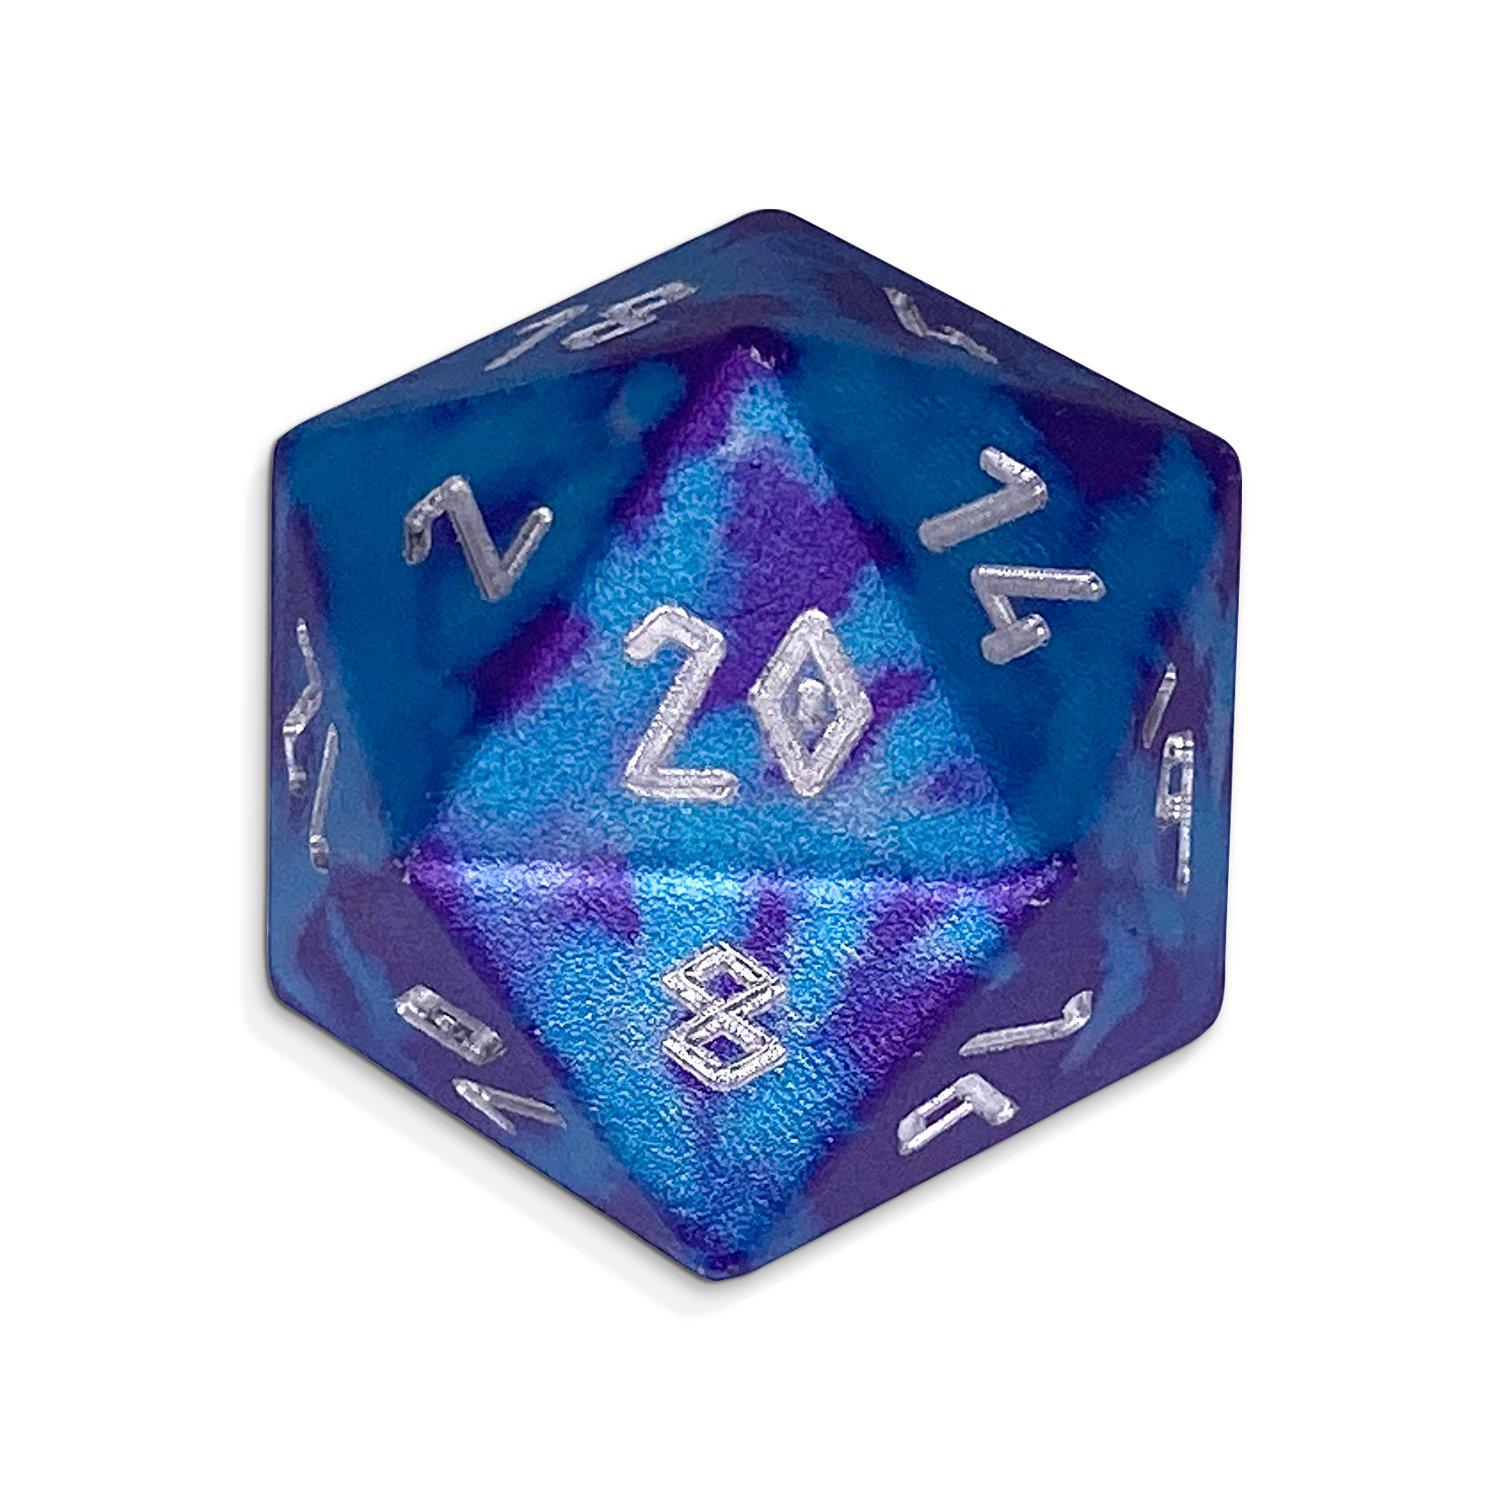 Single Wondrous Dice® D20 in Time Warp by Norse Foundry® 6063 Aircraft Grade Aluminum